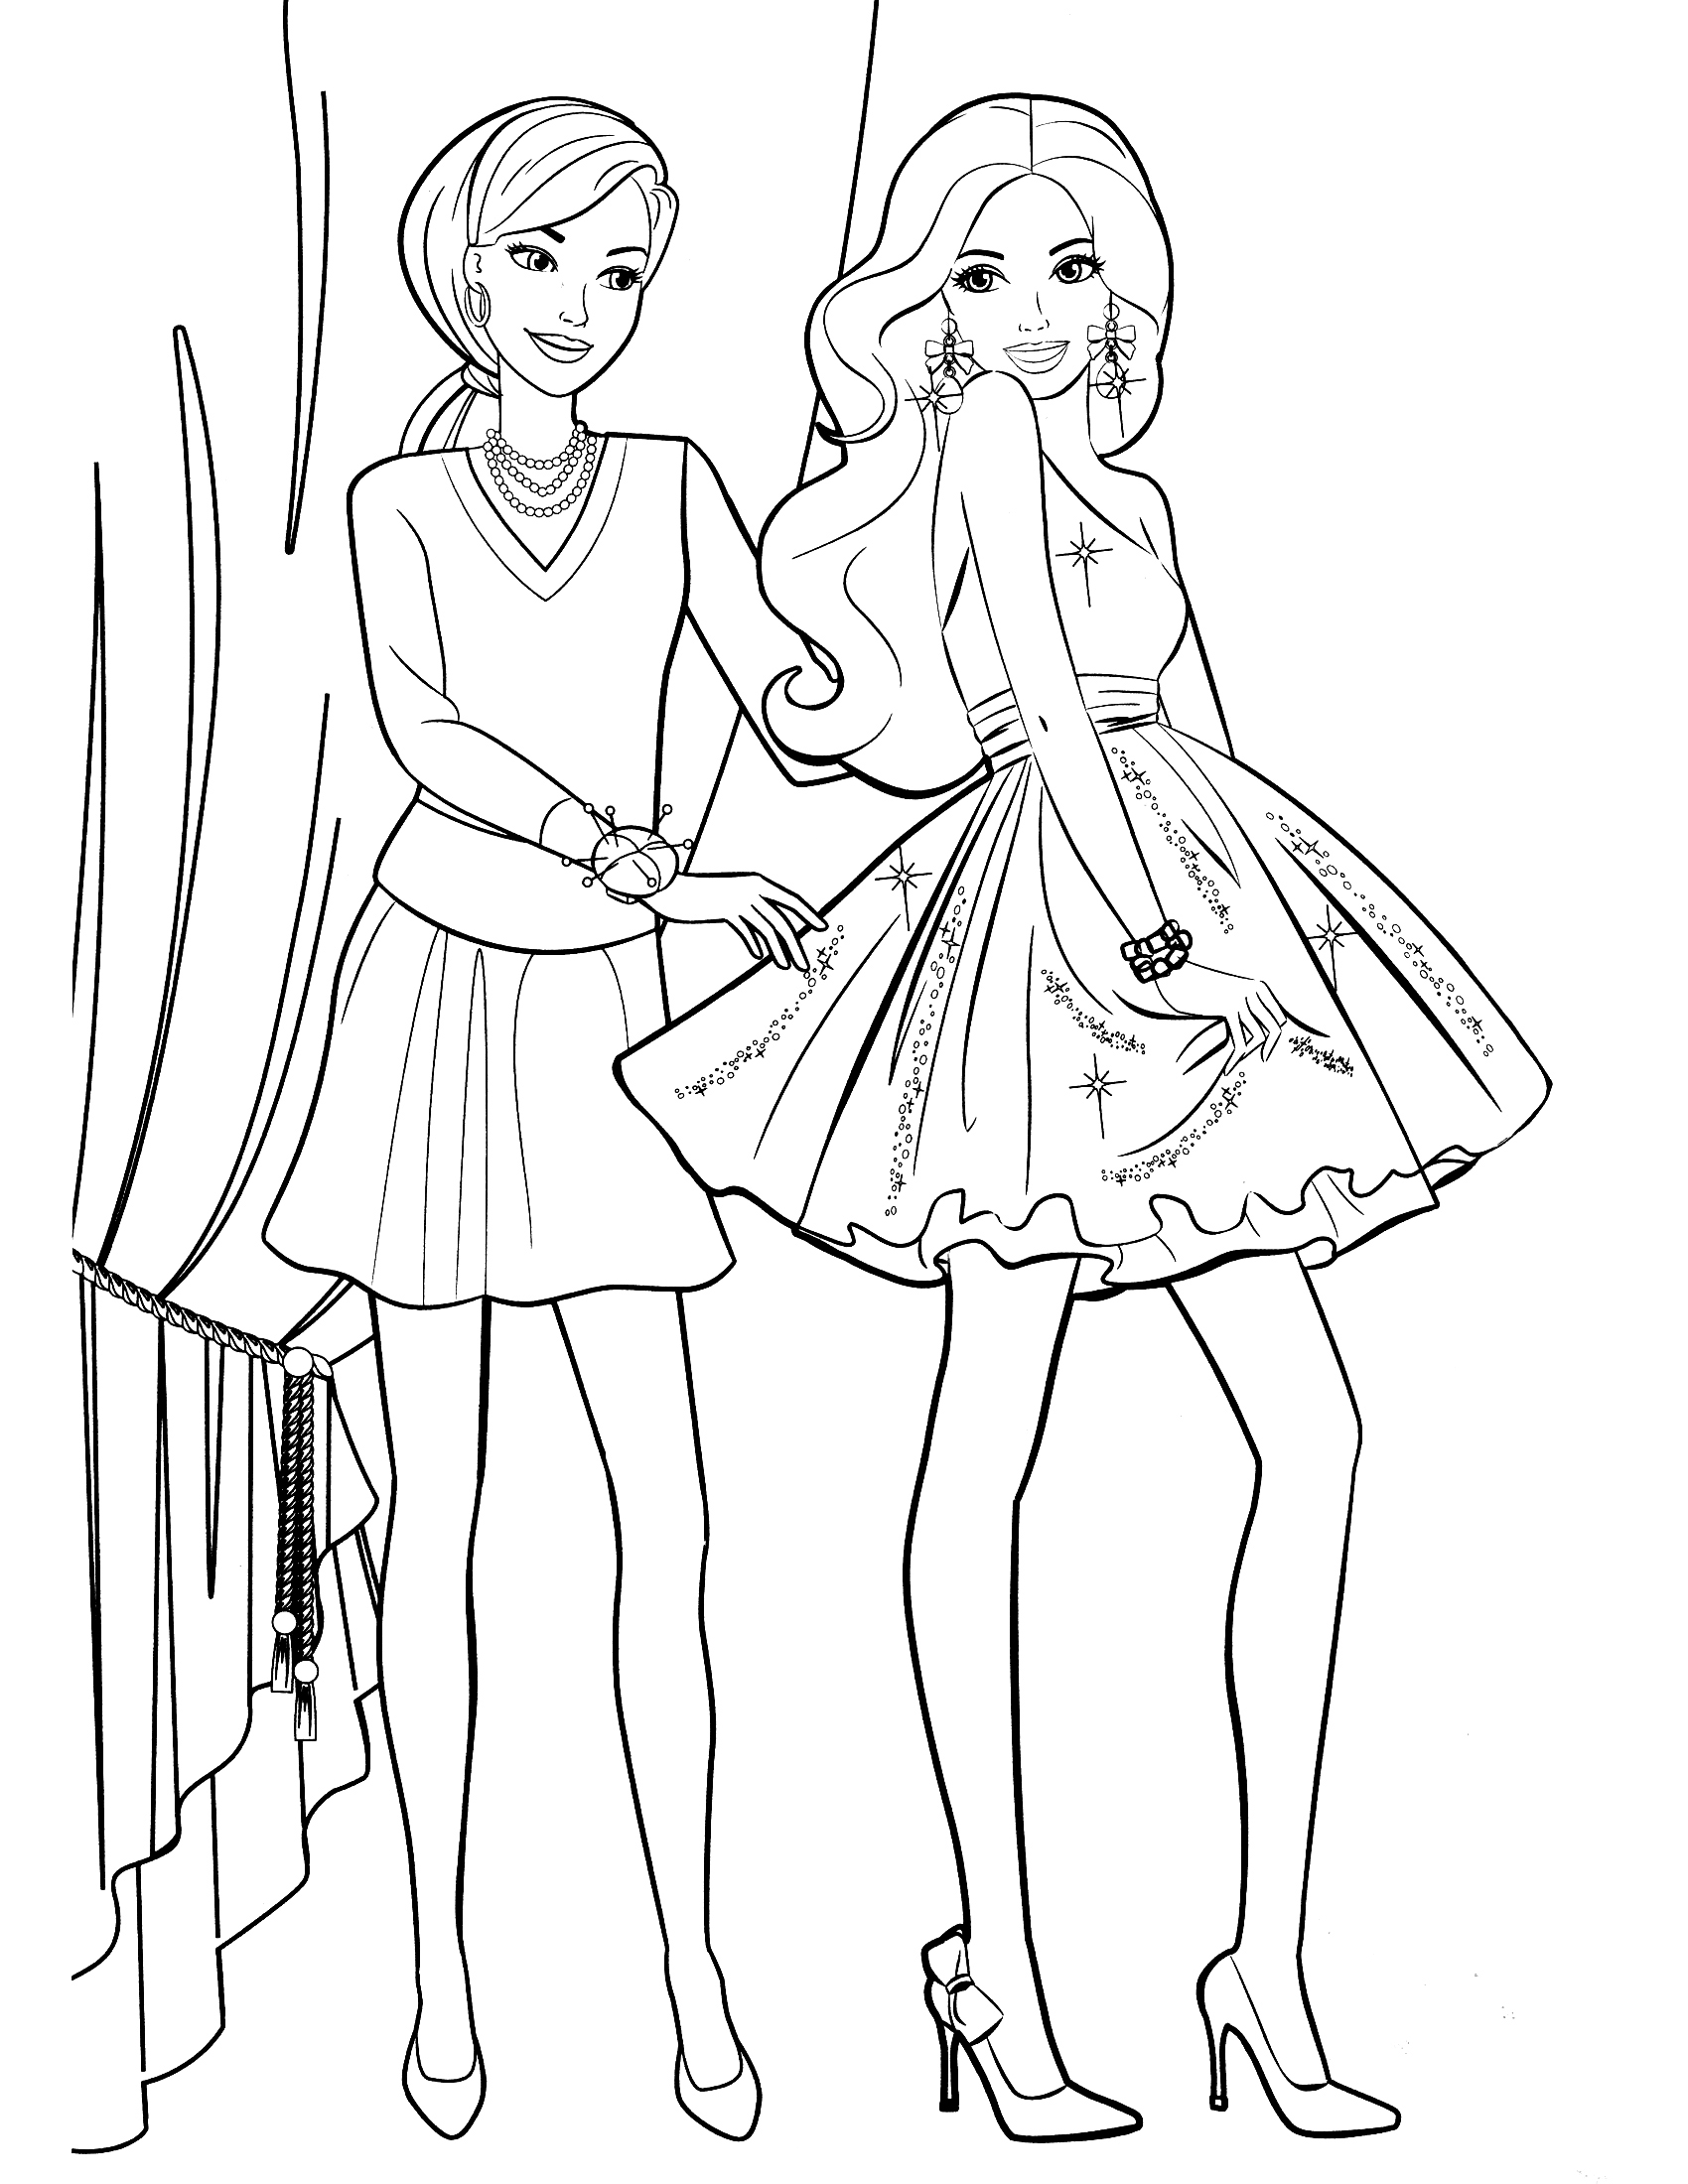 barbie girls coloring pages - photo#21